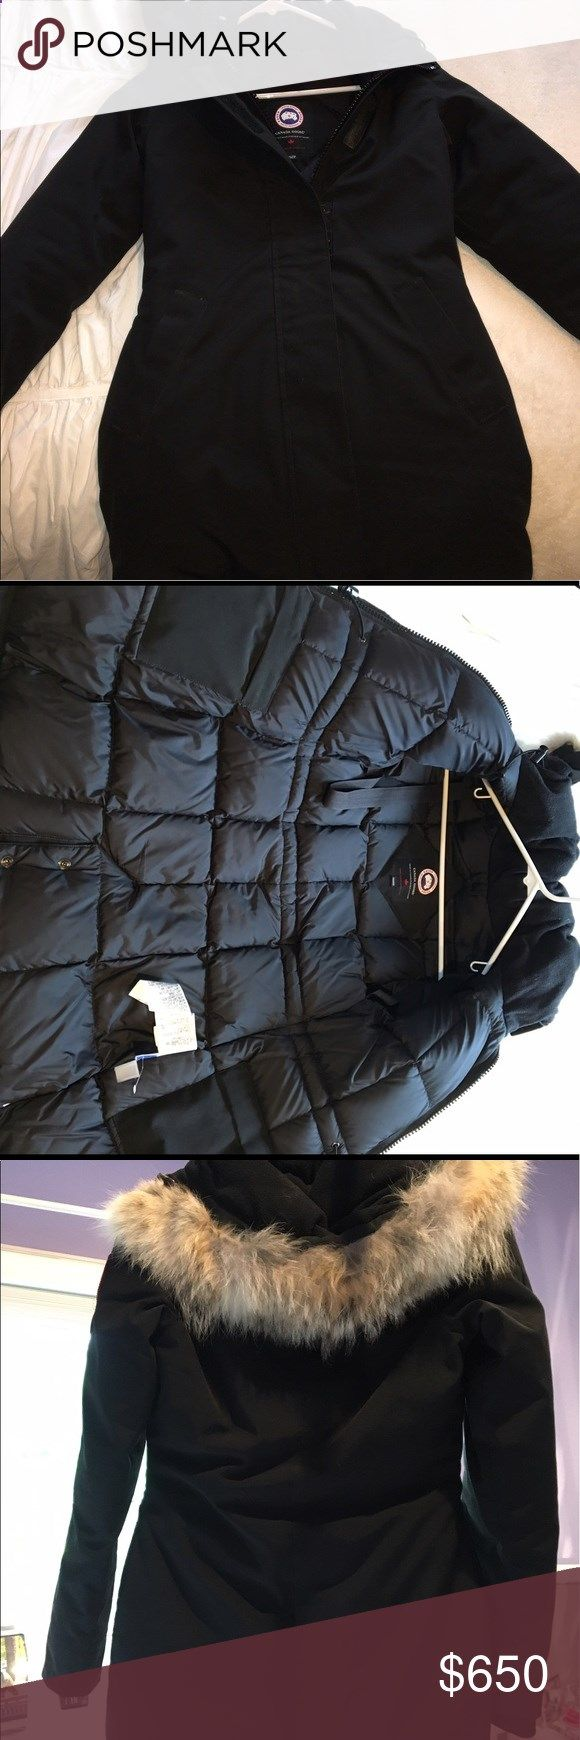 Canada Goose Victoria Parka XXS Victoria parka. In like-new condition. Size: XXS. Genuine coyote fur fleece hood. Fully functioning zipper and Velcro front. 100% authentic. Canada Goose Jackets  Coats Puffers